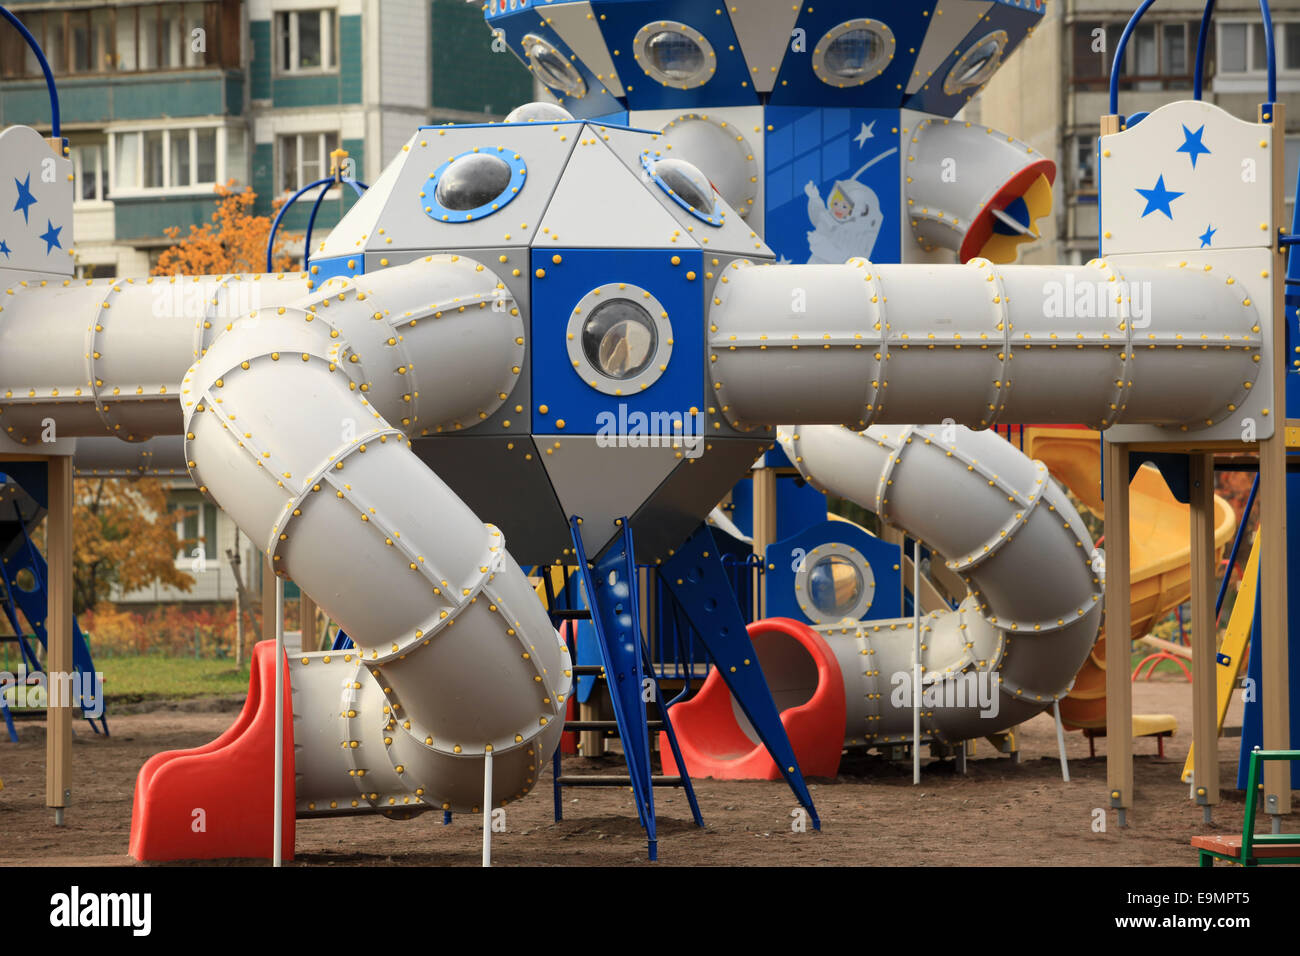 playground spaceport - Stock Image